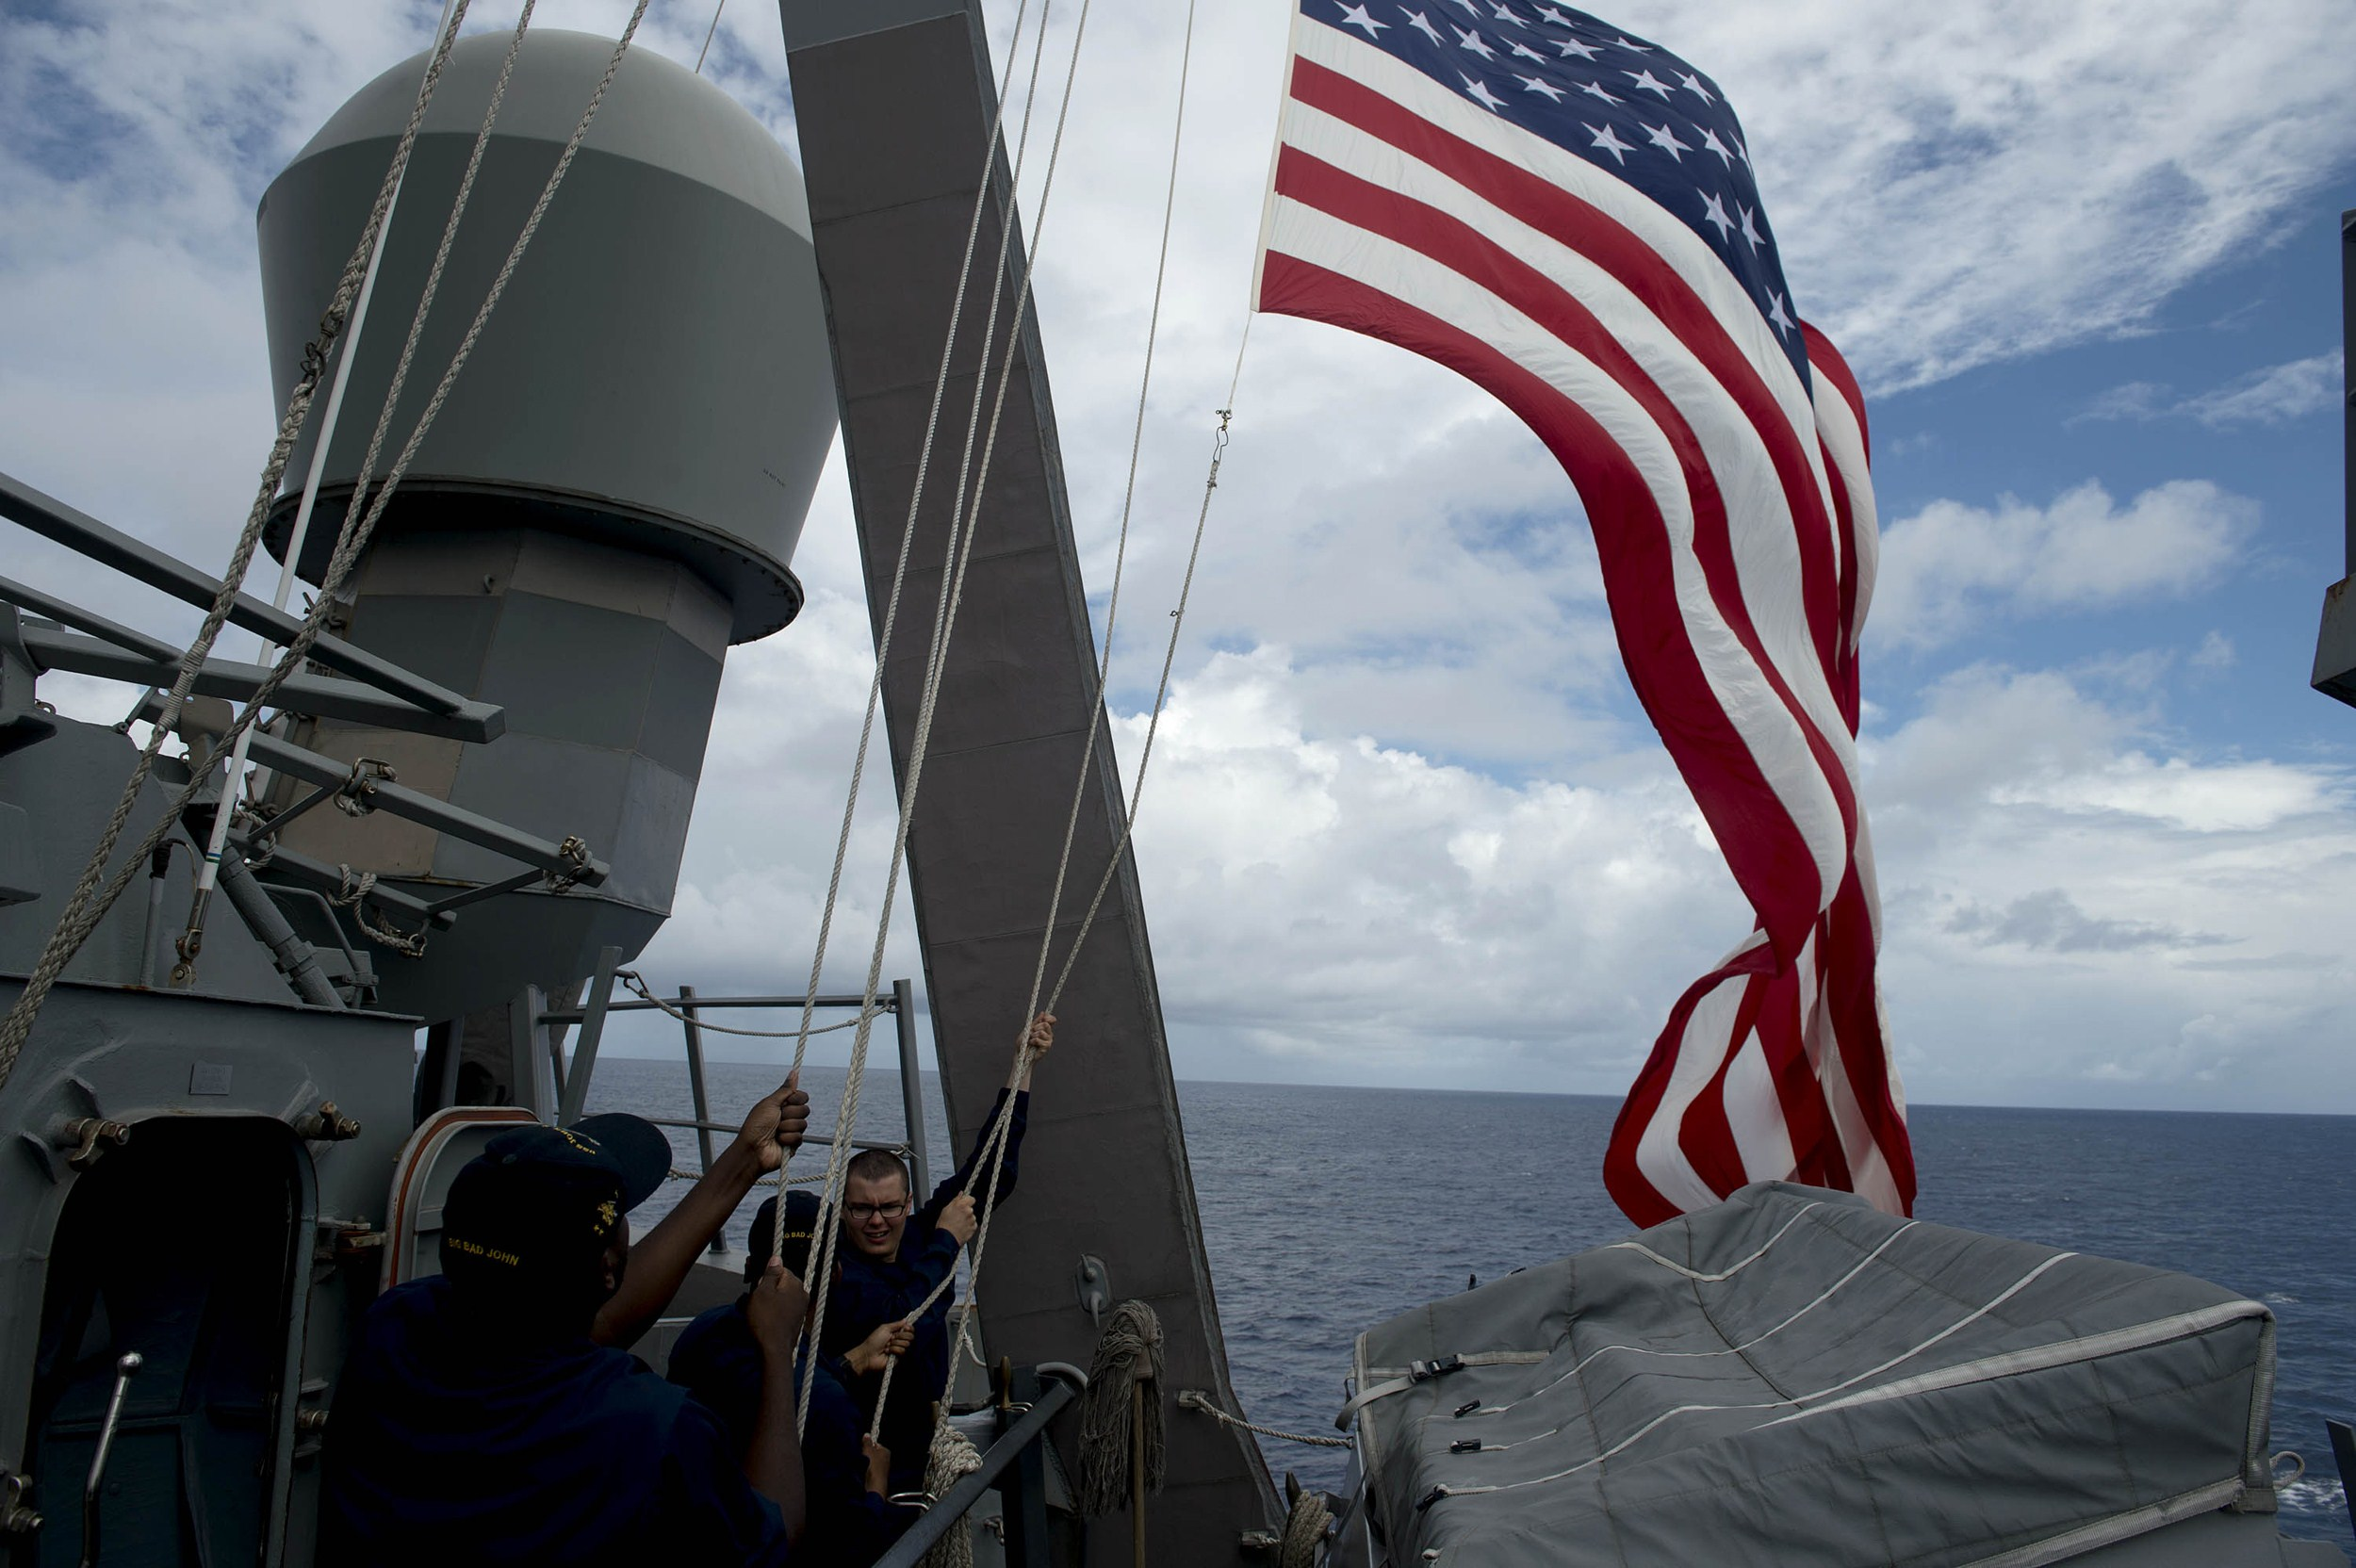 U.S. Navy personnel aboard the USS John S. McCain raise their flag during the bilateral maritime exercise between the Philippine Navy and U.S. Navy dubbed Cooperation Afloat Readiness and Training in the South China Sea, near waters claimed by Beijing, on June 28, 2014